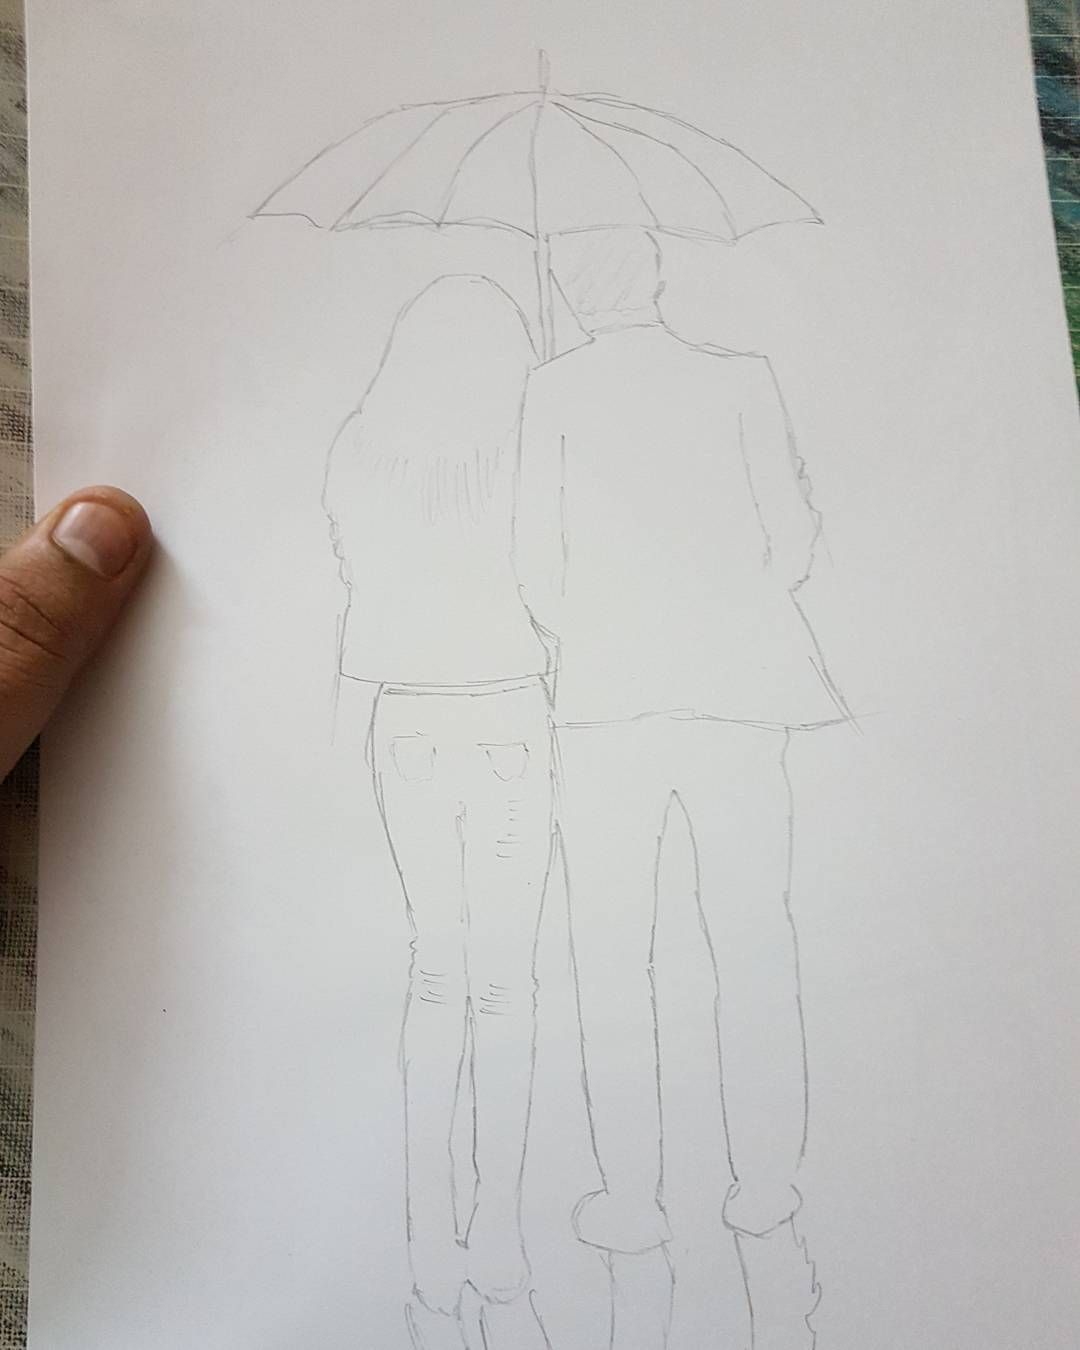 Wip sketch shadesofgray couples rain night blackandwhite pencil art